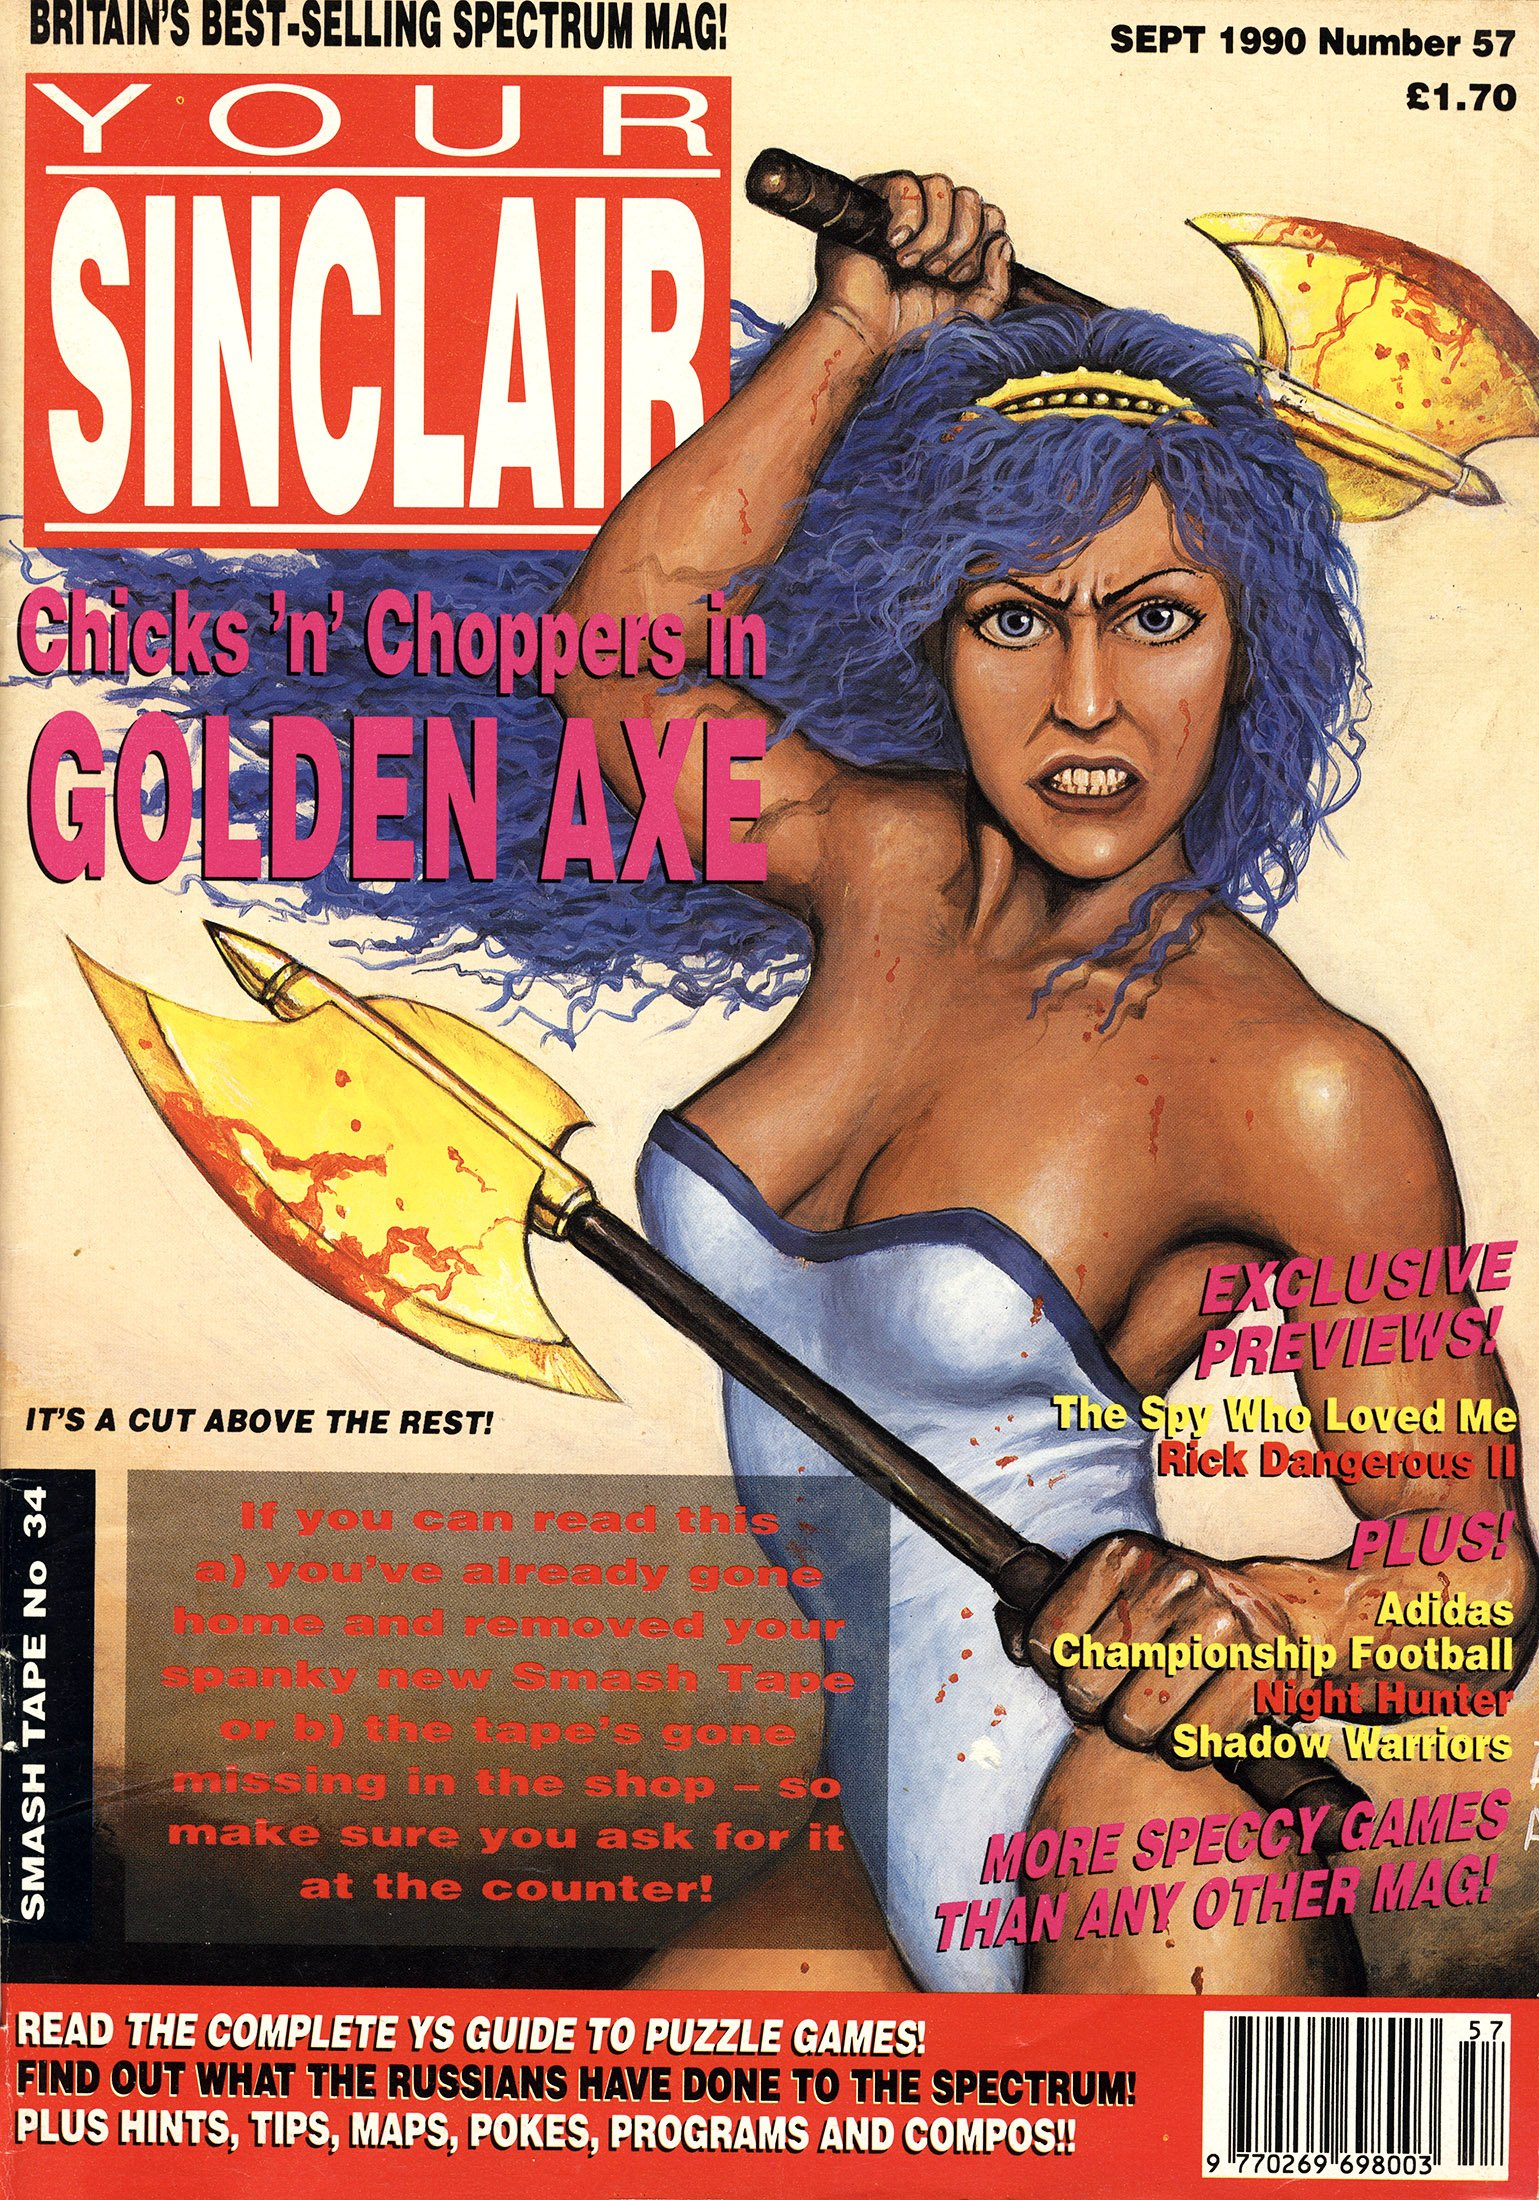 Your Sinclair Issue 57 (September 1990)